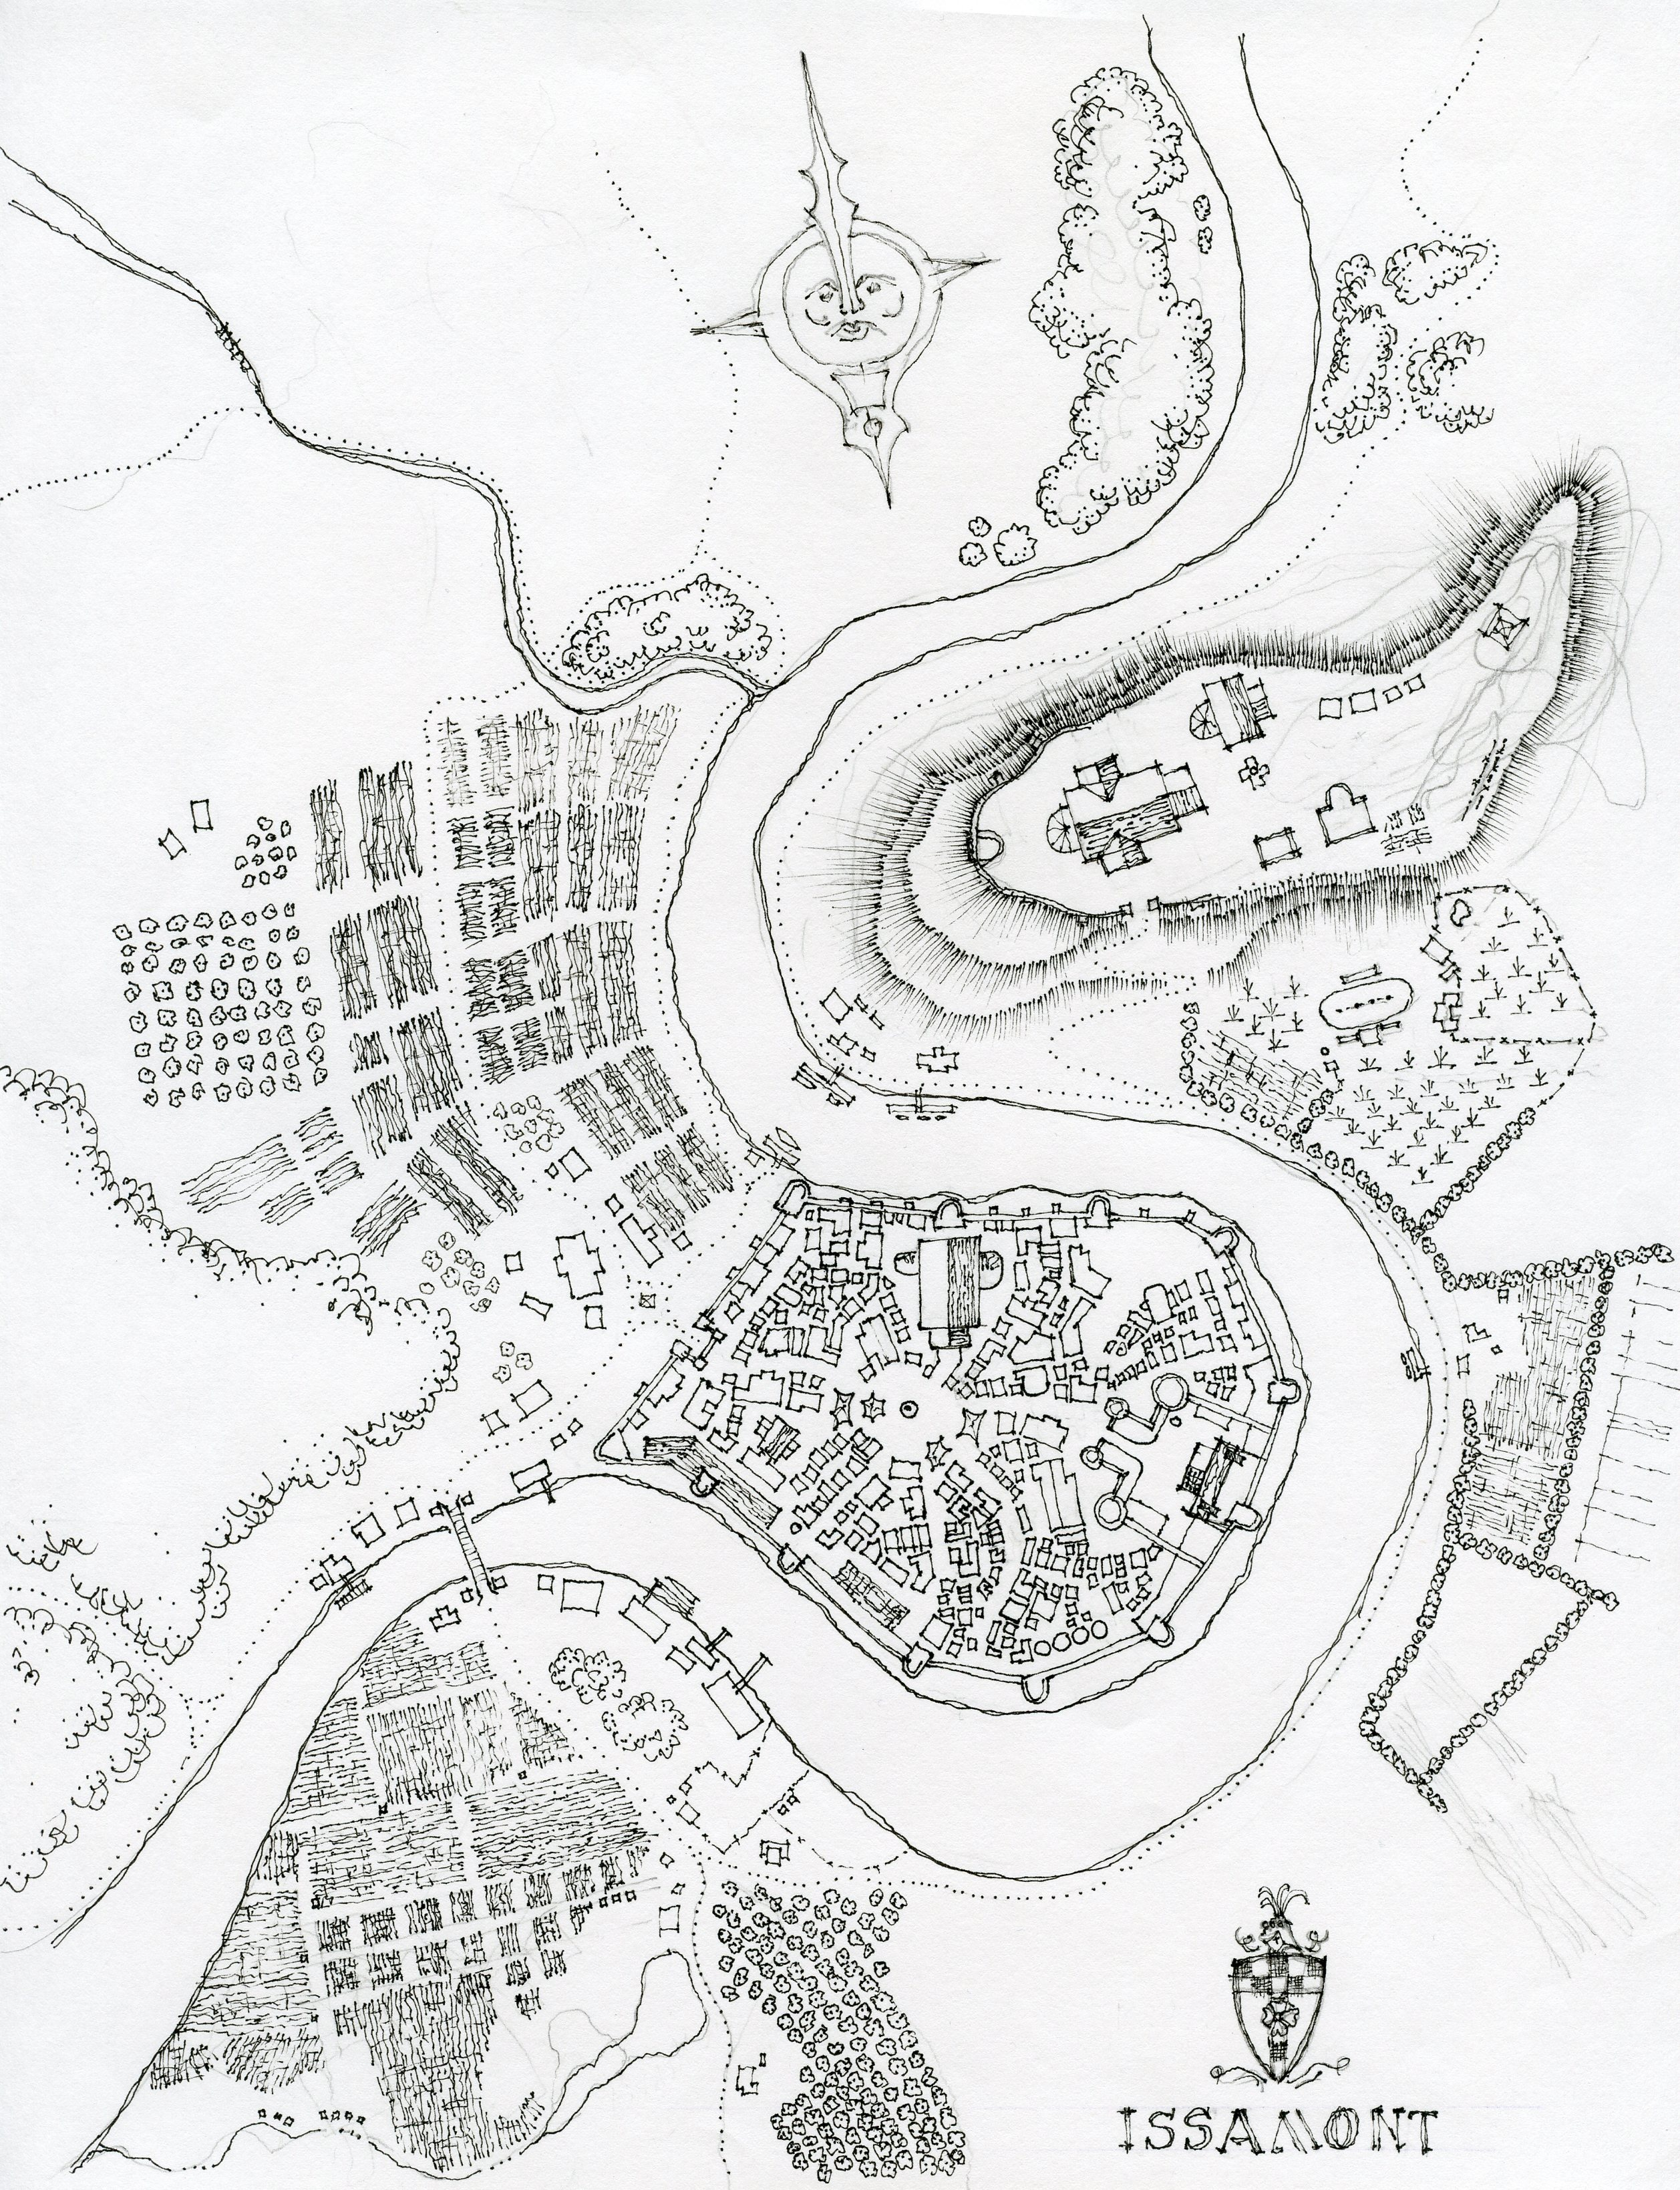 issamont  0http://www.cartographersguild.com/album.php?albumid=4028&attachmentid=515732